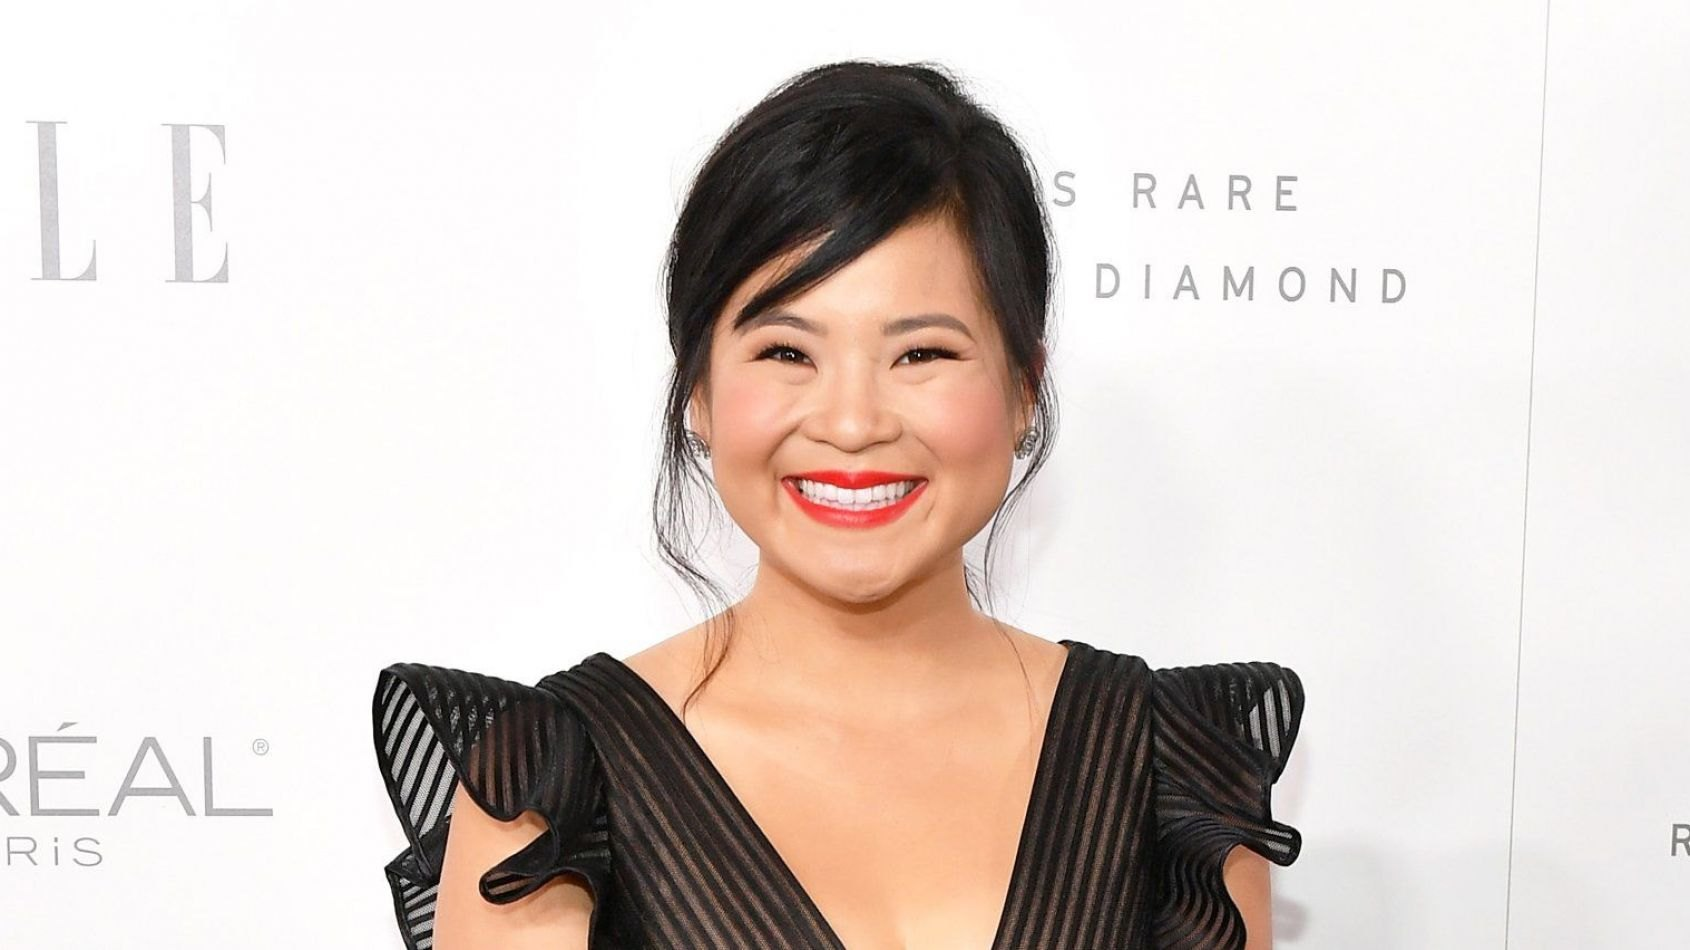 Kelly Marie Tran supprime ses posts Instagram suite à du harcèlement